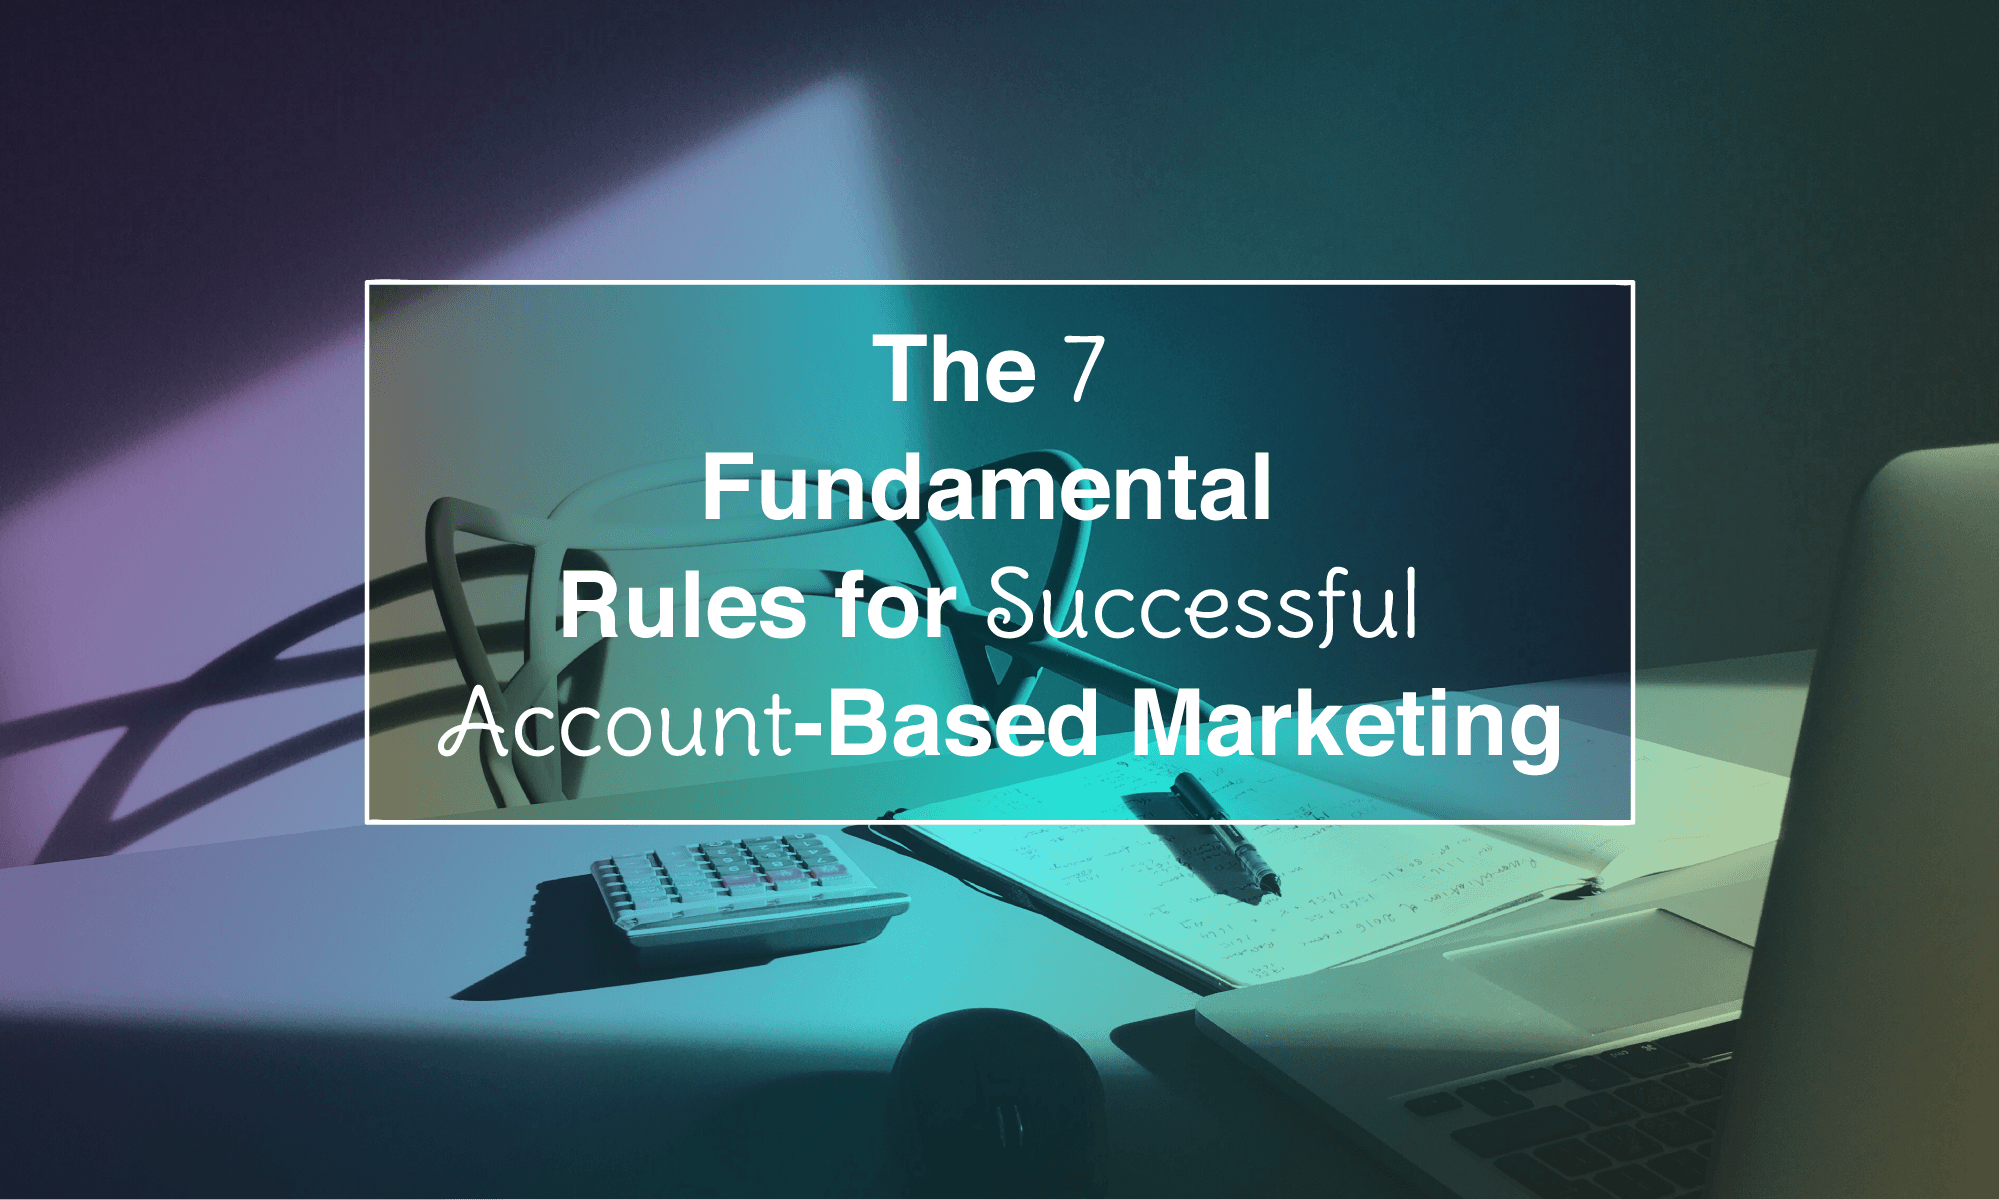 The 7 Fundamental Rules for Successful Account-Based Marketing